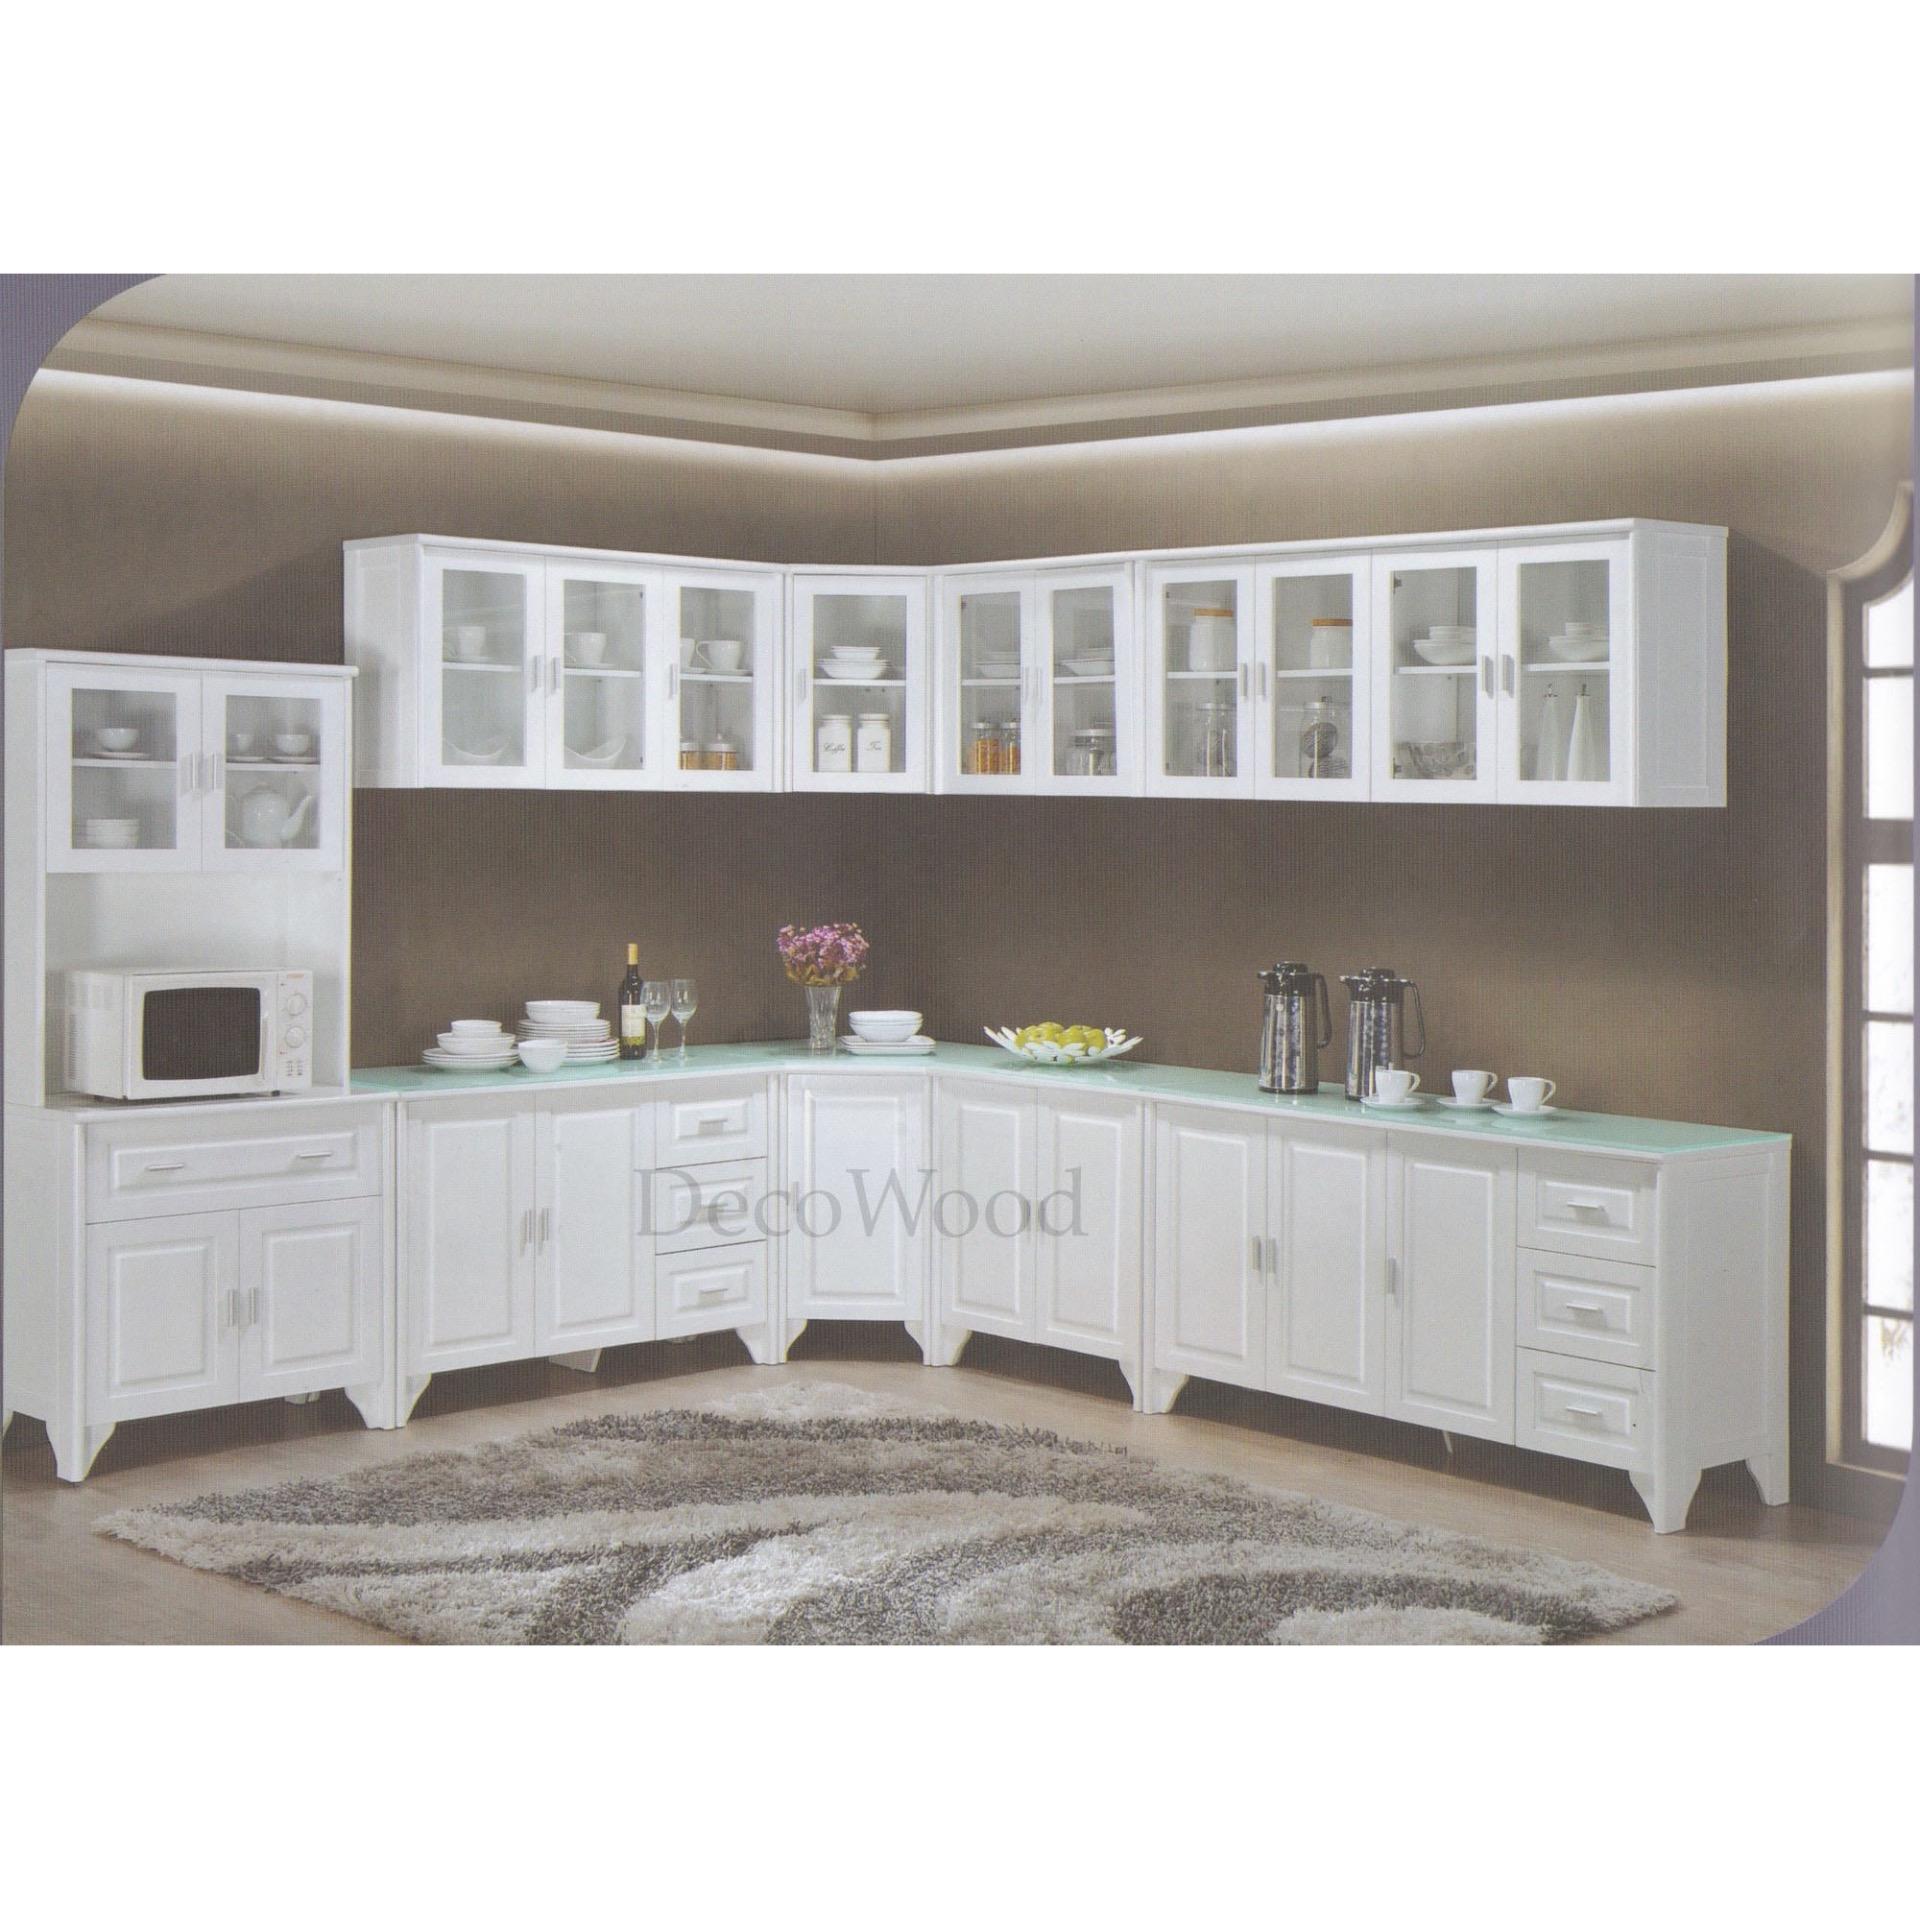 4 Feet Solid Strong Kitchen Cabinet (end 5/1/2021 12:00 AM)